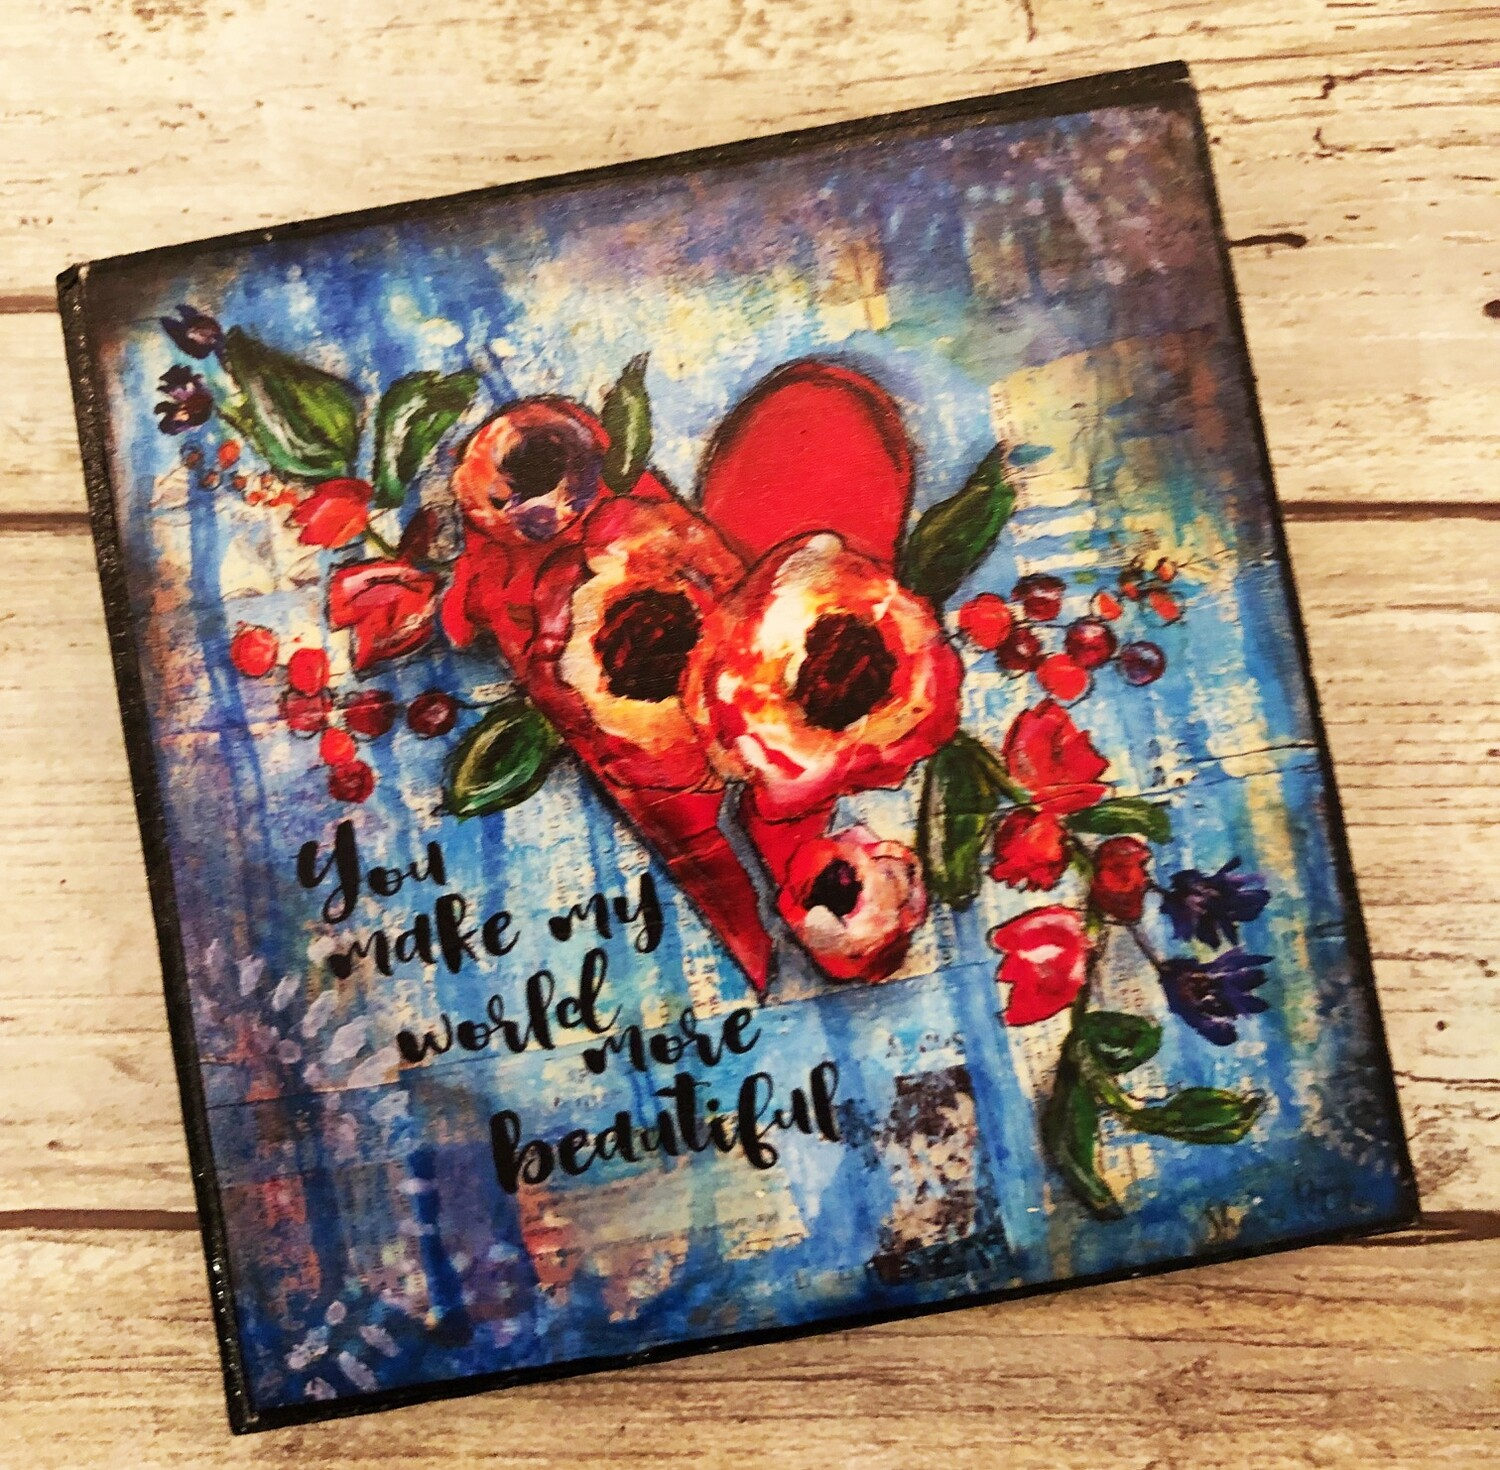 """You make my world more beautiful"" 4x4 print on wood clearance"